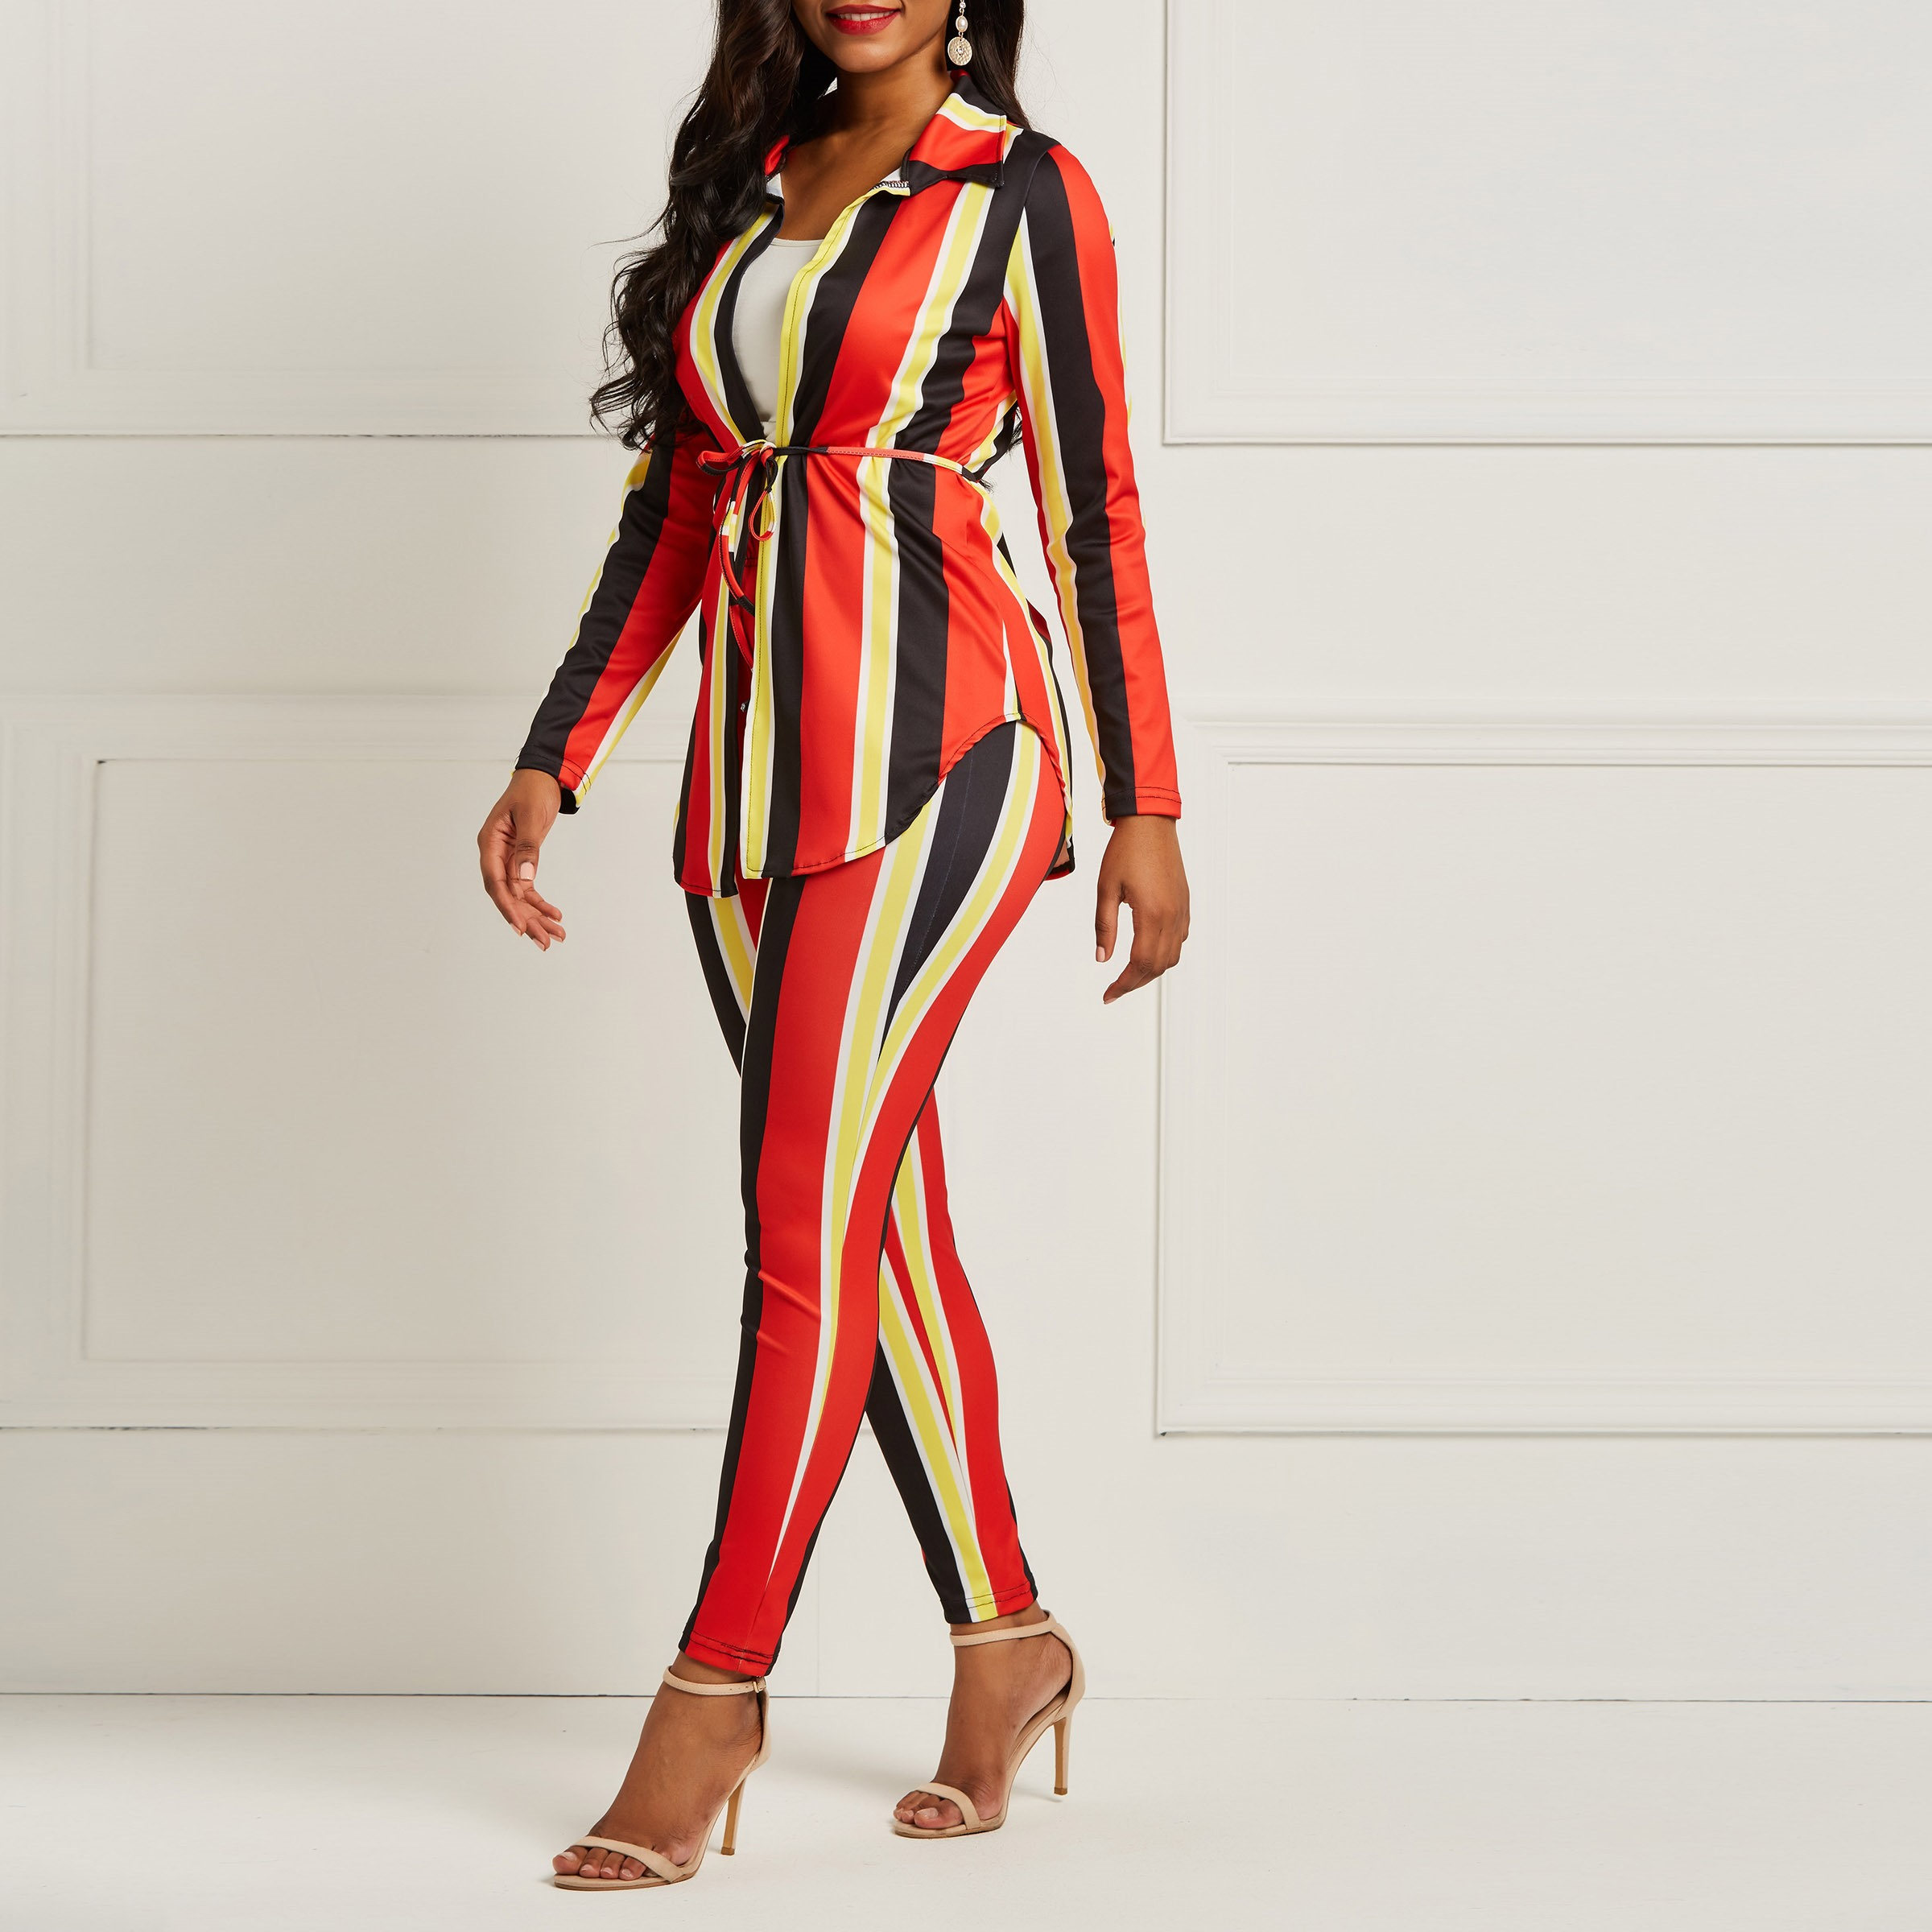 Women Striped Two Piece Long Sleeve Shirt Top+Pants Outfit Outfit Office Work